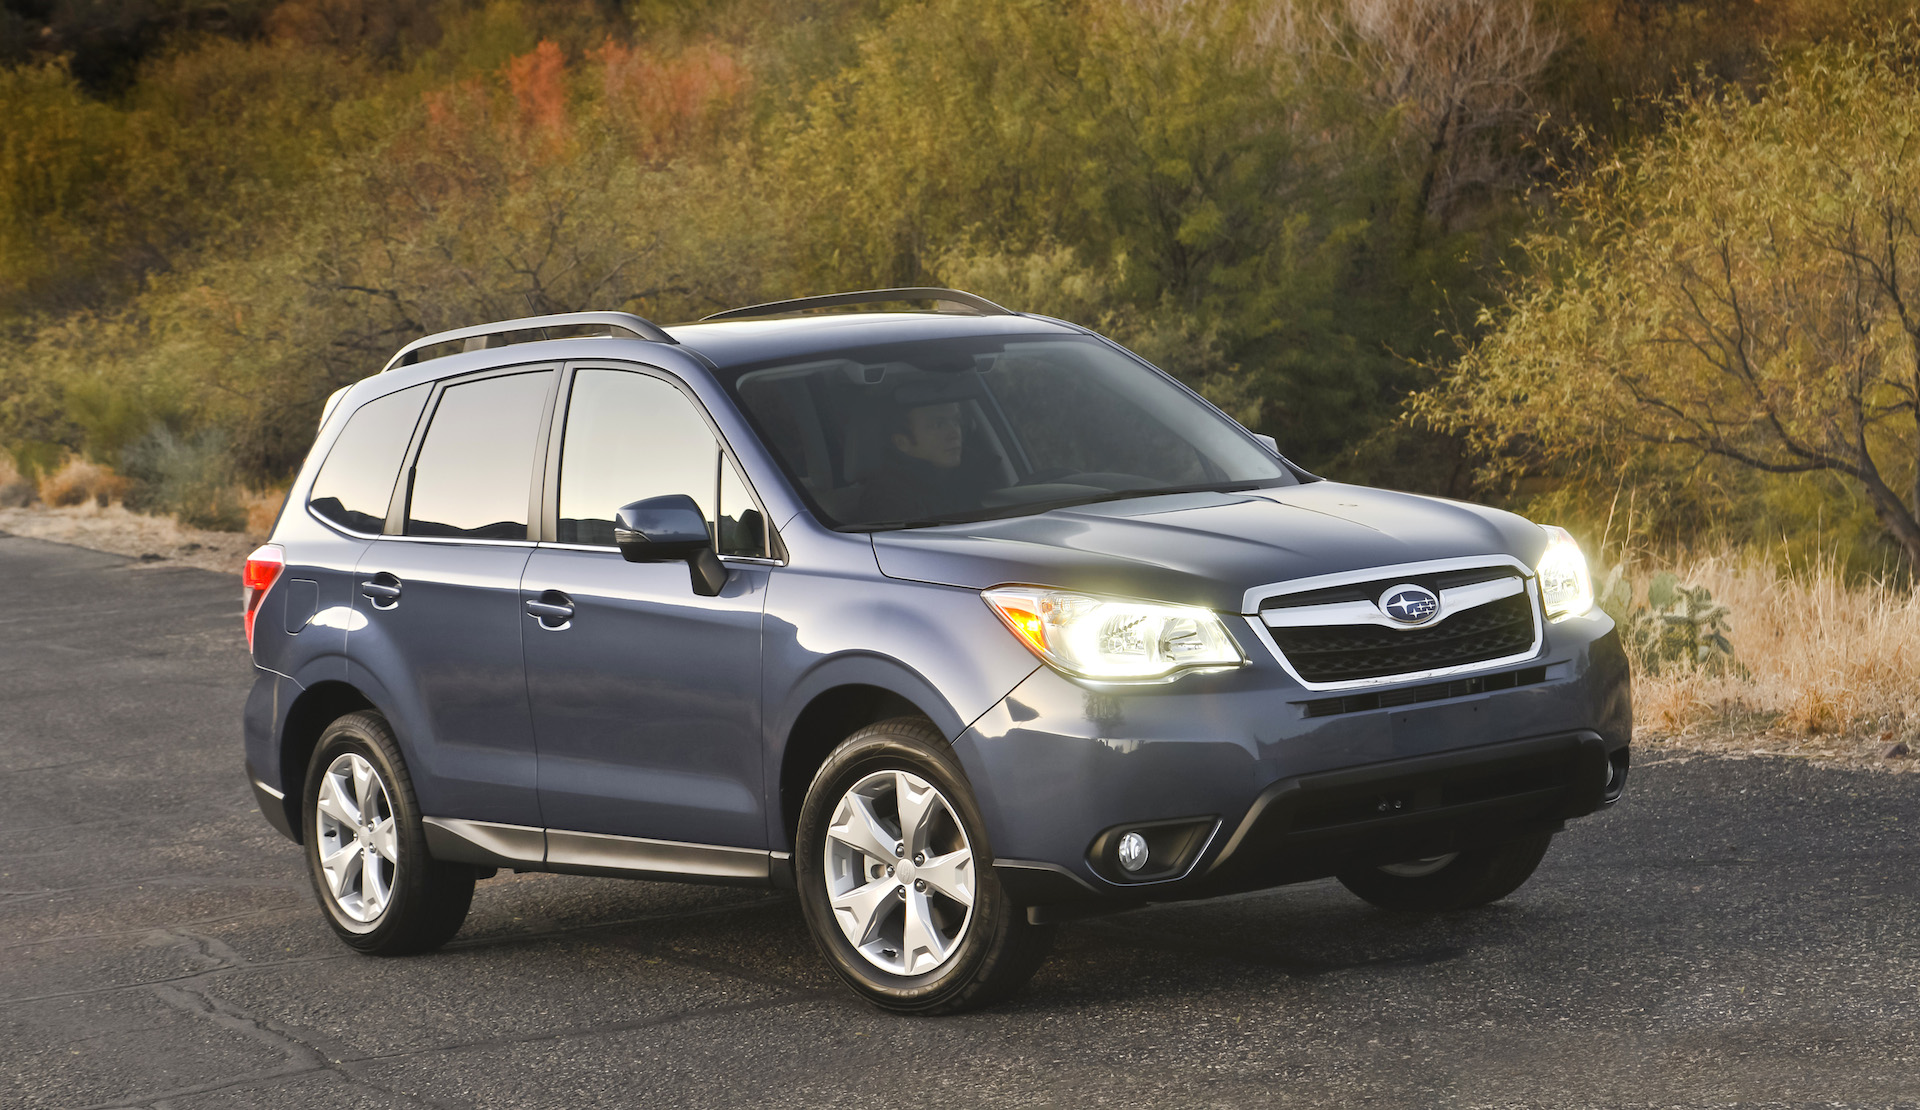 2015 Subaru Forester prices and expert review - The Car Connection